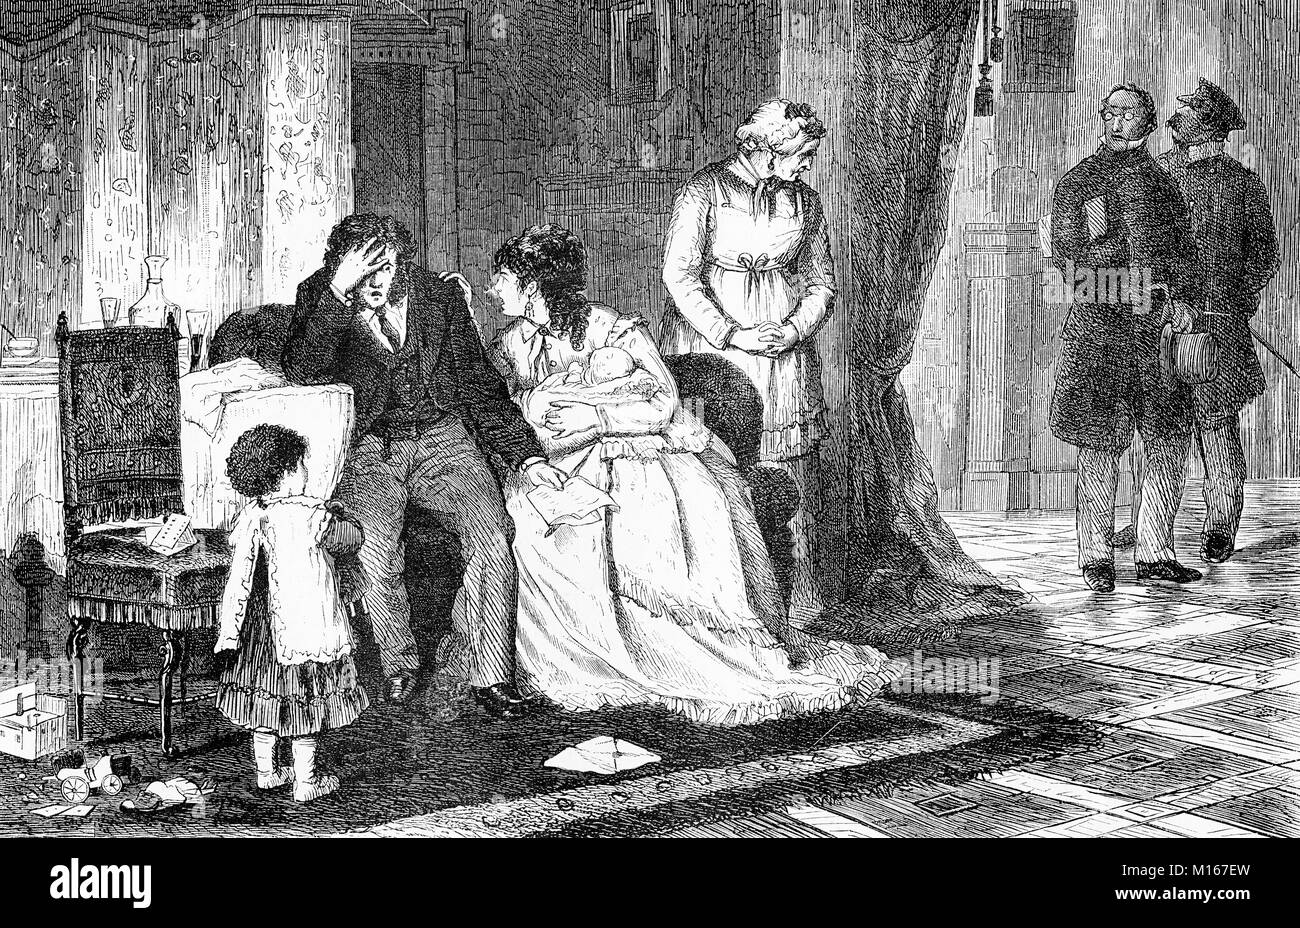 Family disaster, father goes bankrupt, vintage engraving - Stock Image